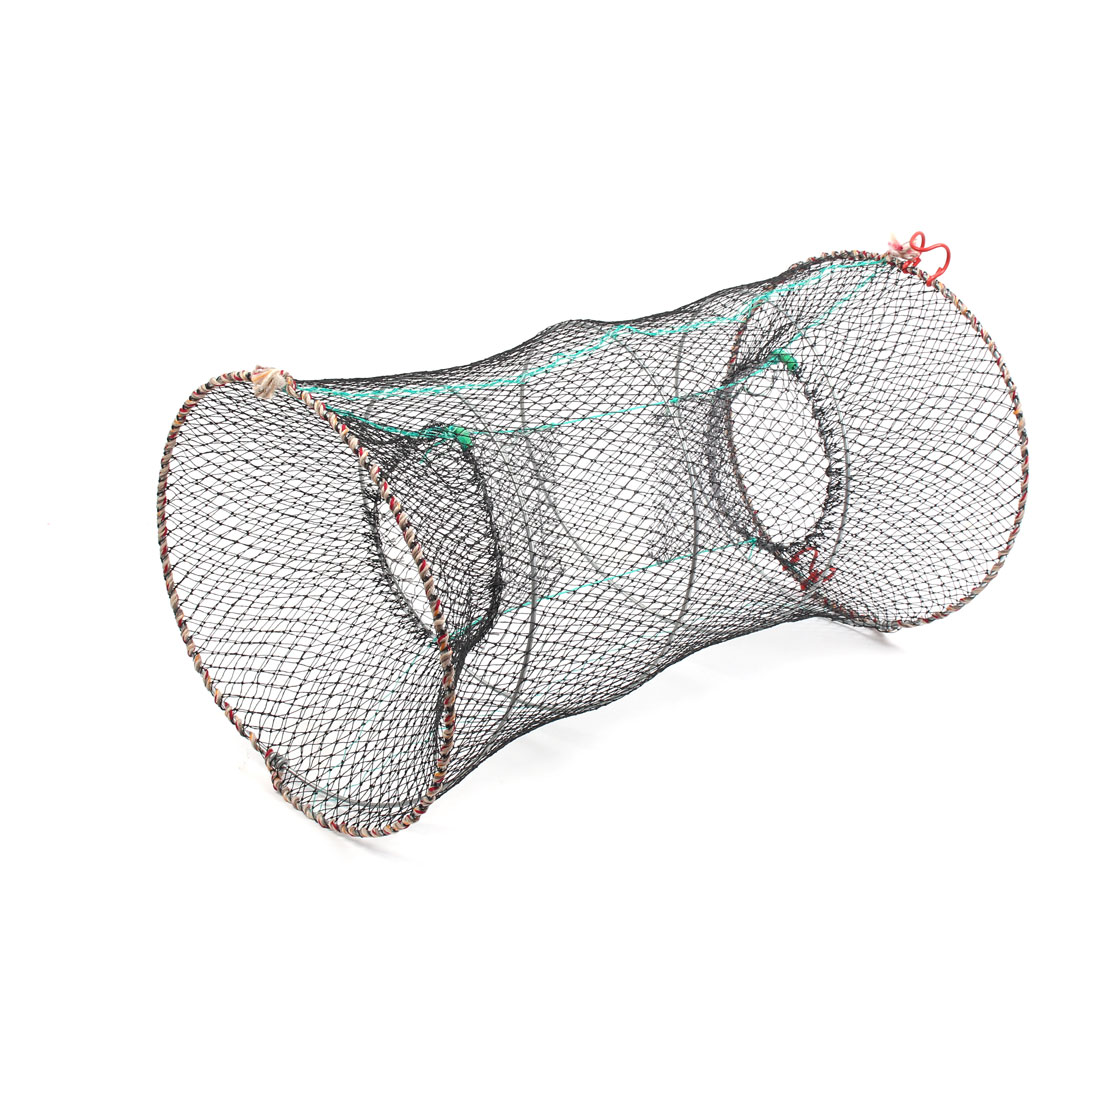 Fishing Nylon Cylindrical Foldable Crab Crawfish Cage Net Mesh Black 59cm Height